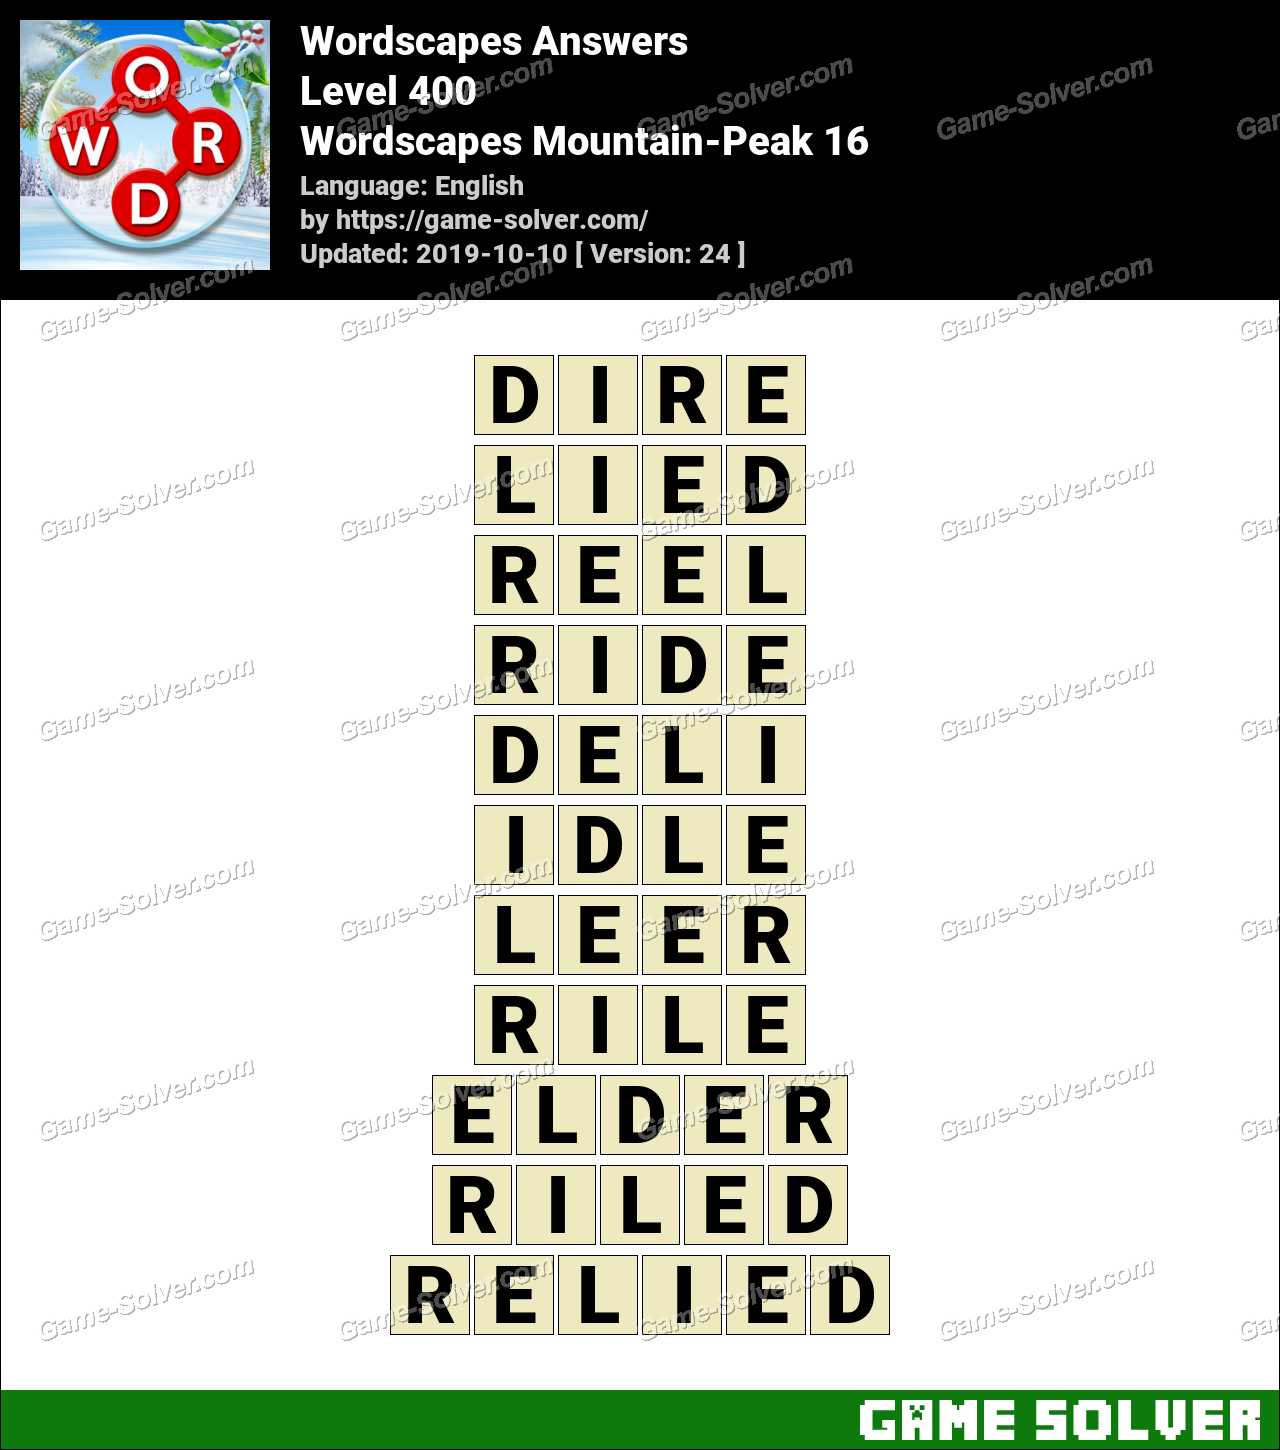 Wordscapes Mountain-Peak 16 Answers